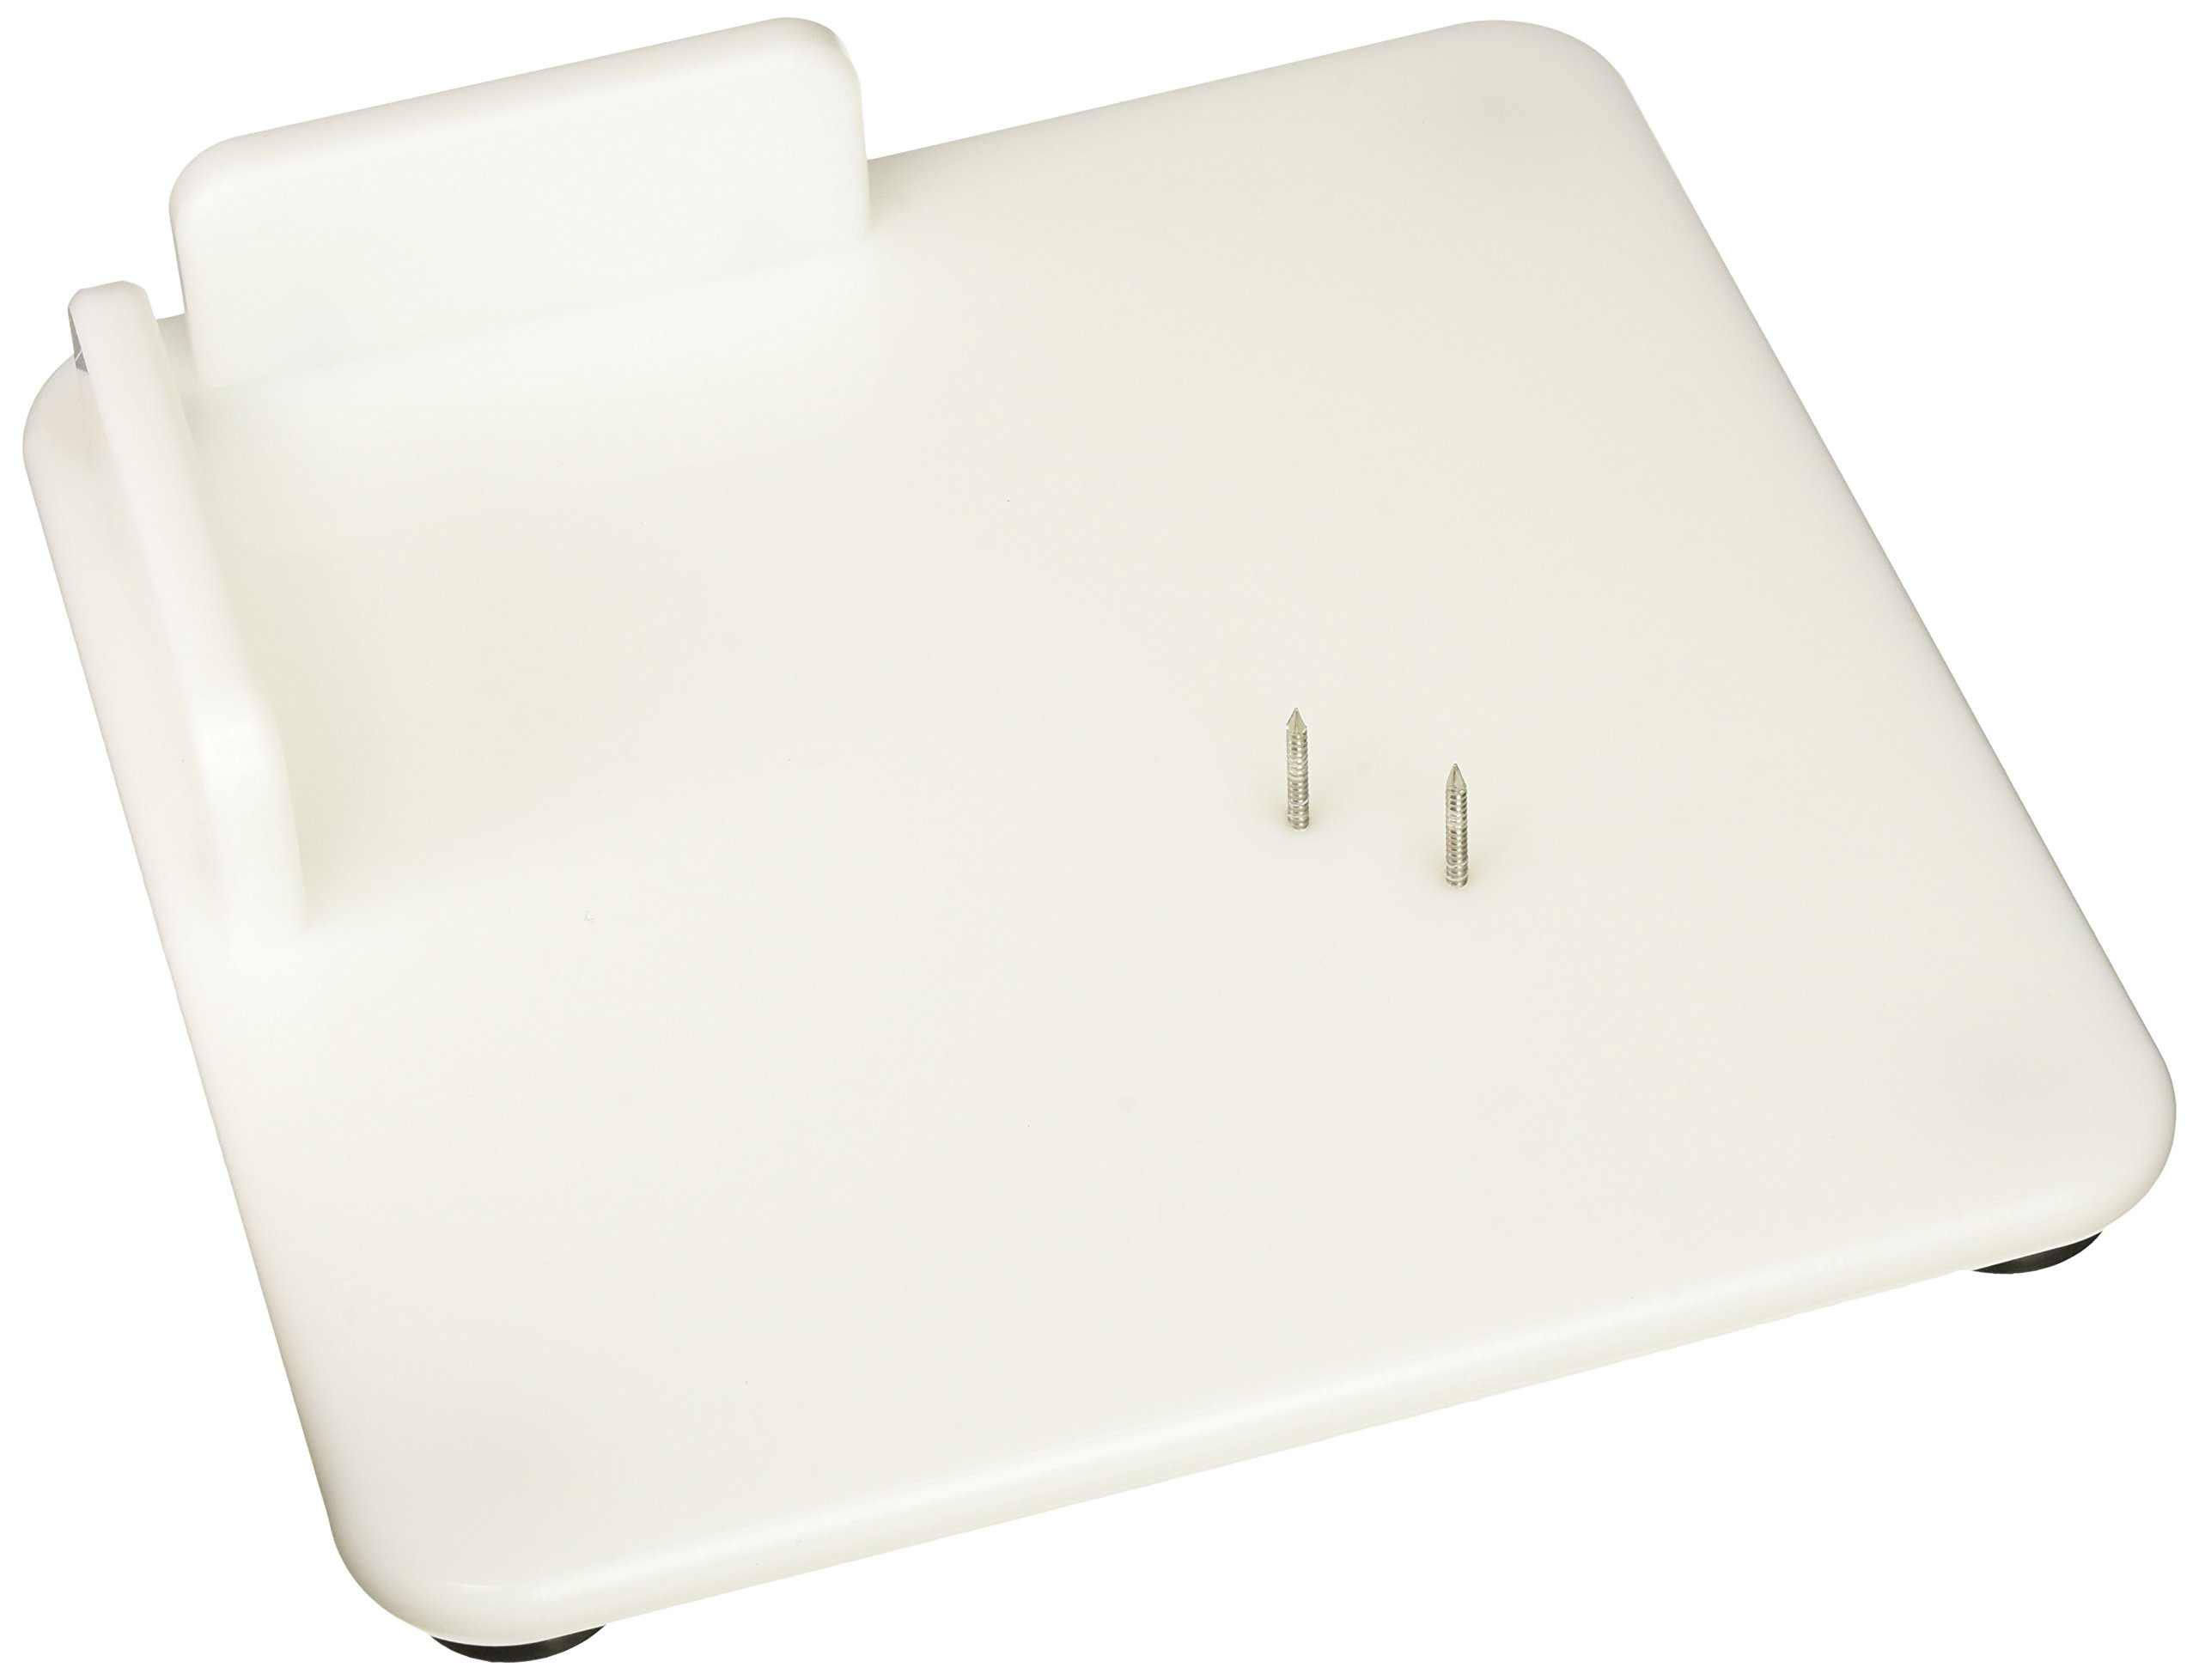 Sammons Preston Hi-D Paring Board, Single Handed Cutting Board with Aluminum Nails for Peeling and Slicing, Suction Feet for Sticking to Counter, and Corner Guards Prevent Food Sliding, 11'' Square by Sammons Preston